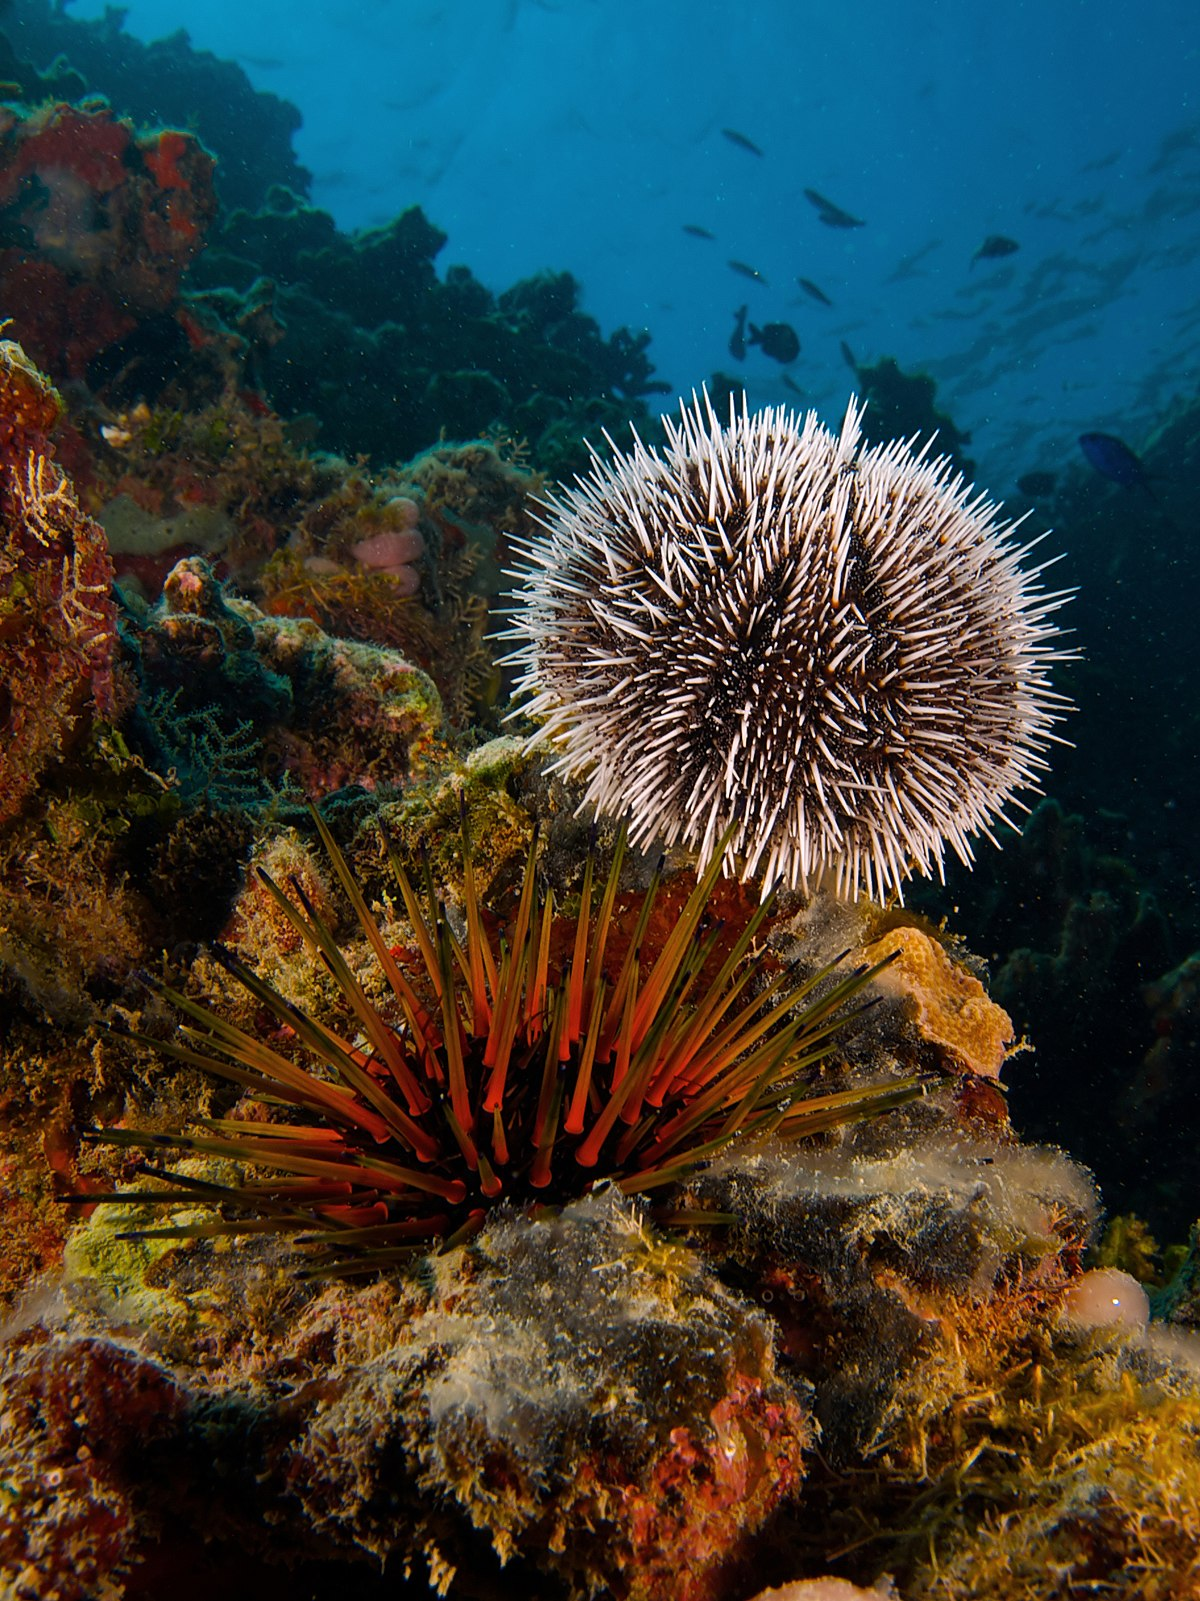 Sea urchin - Wikipedia